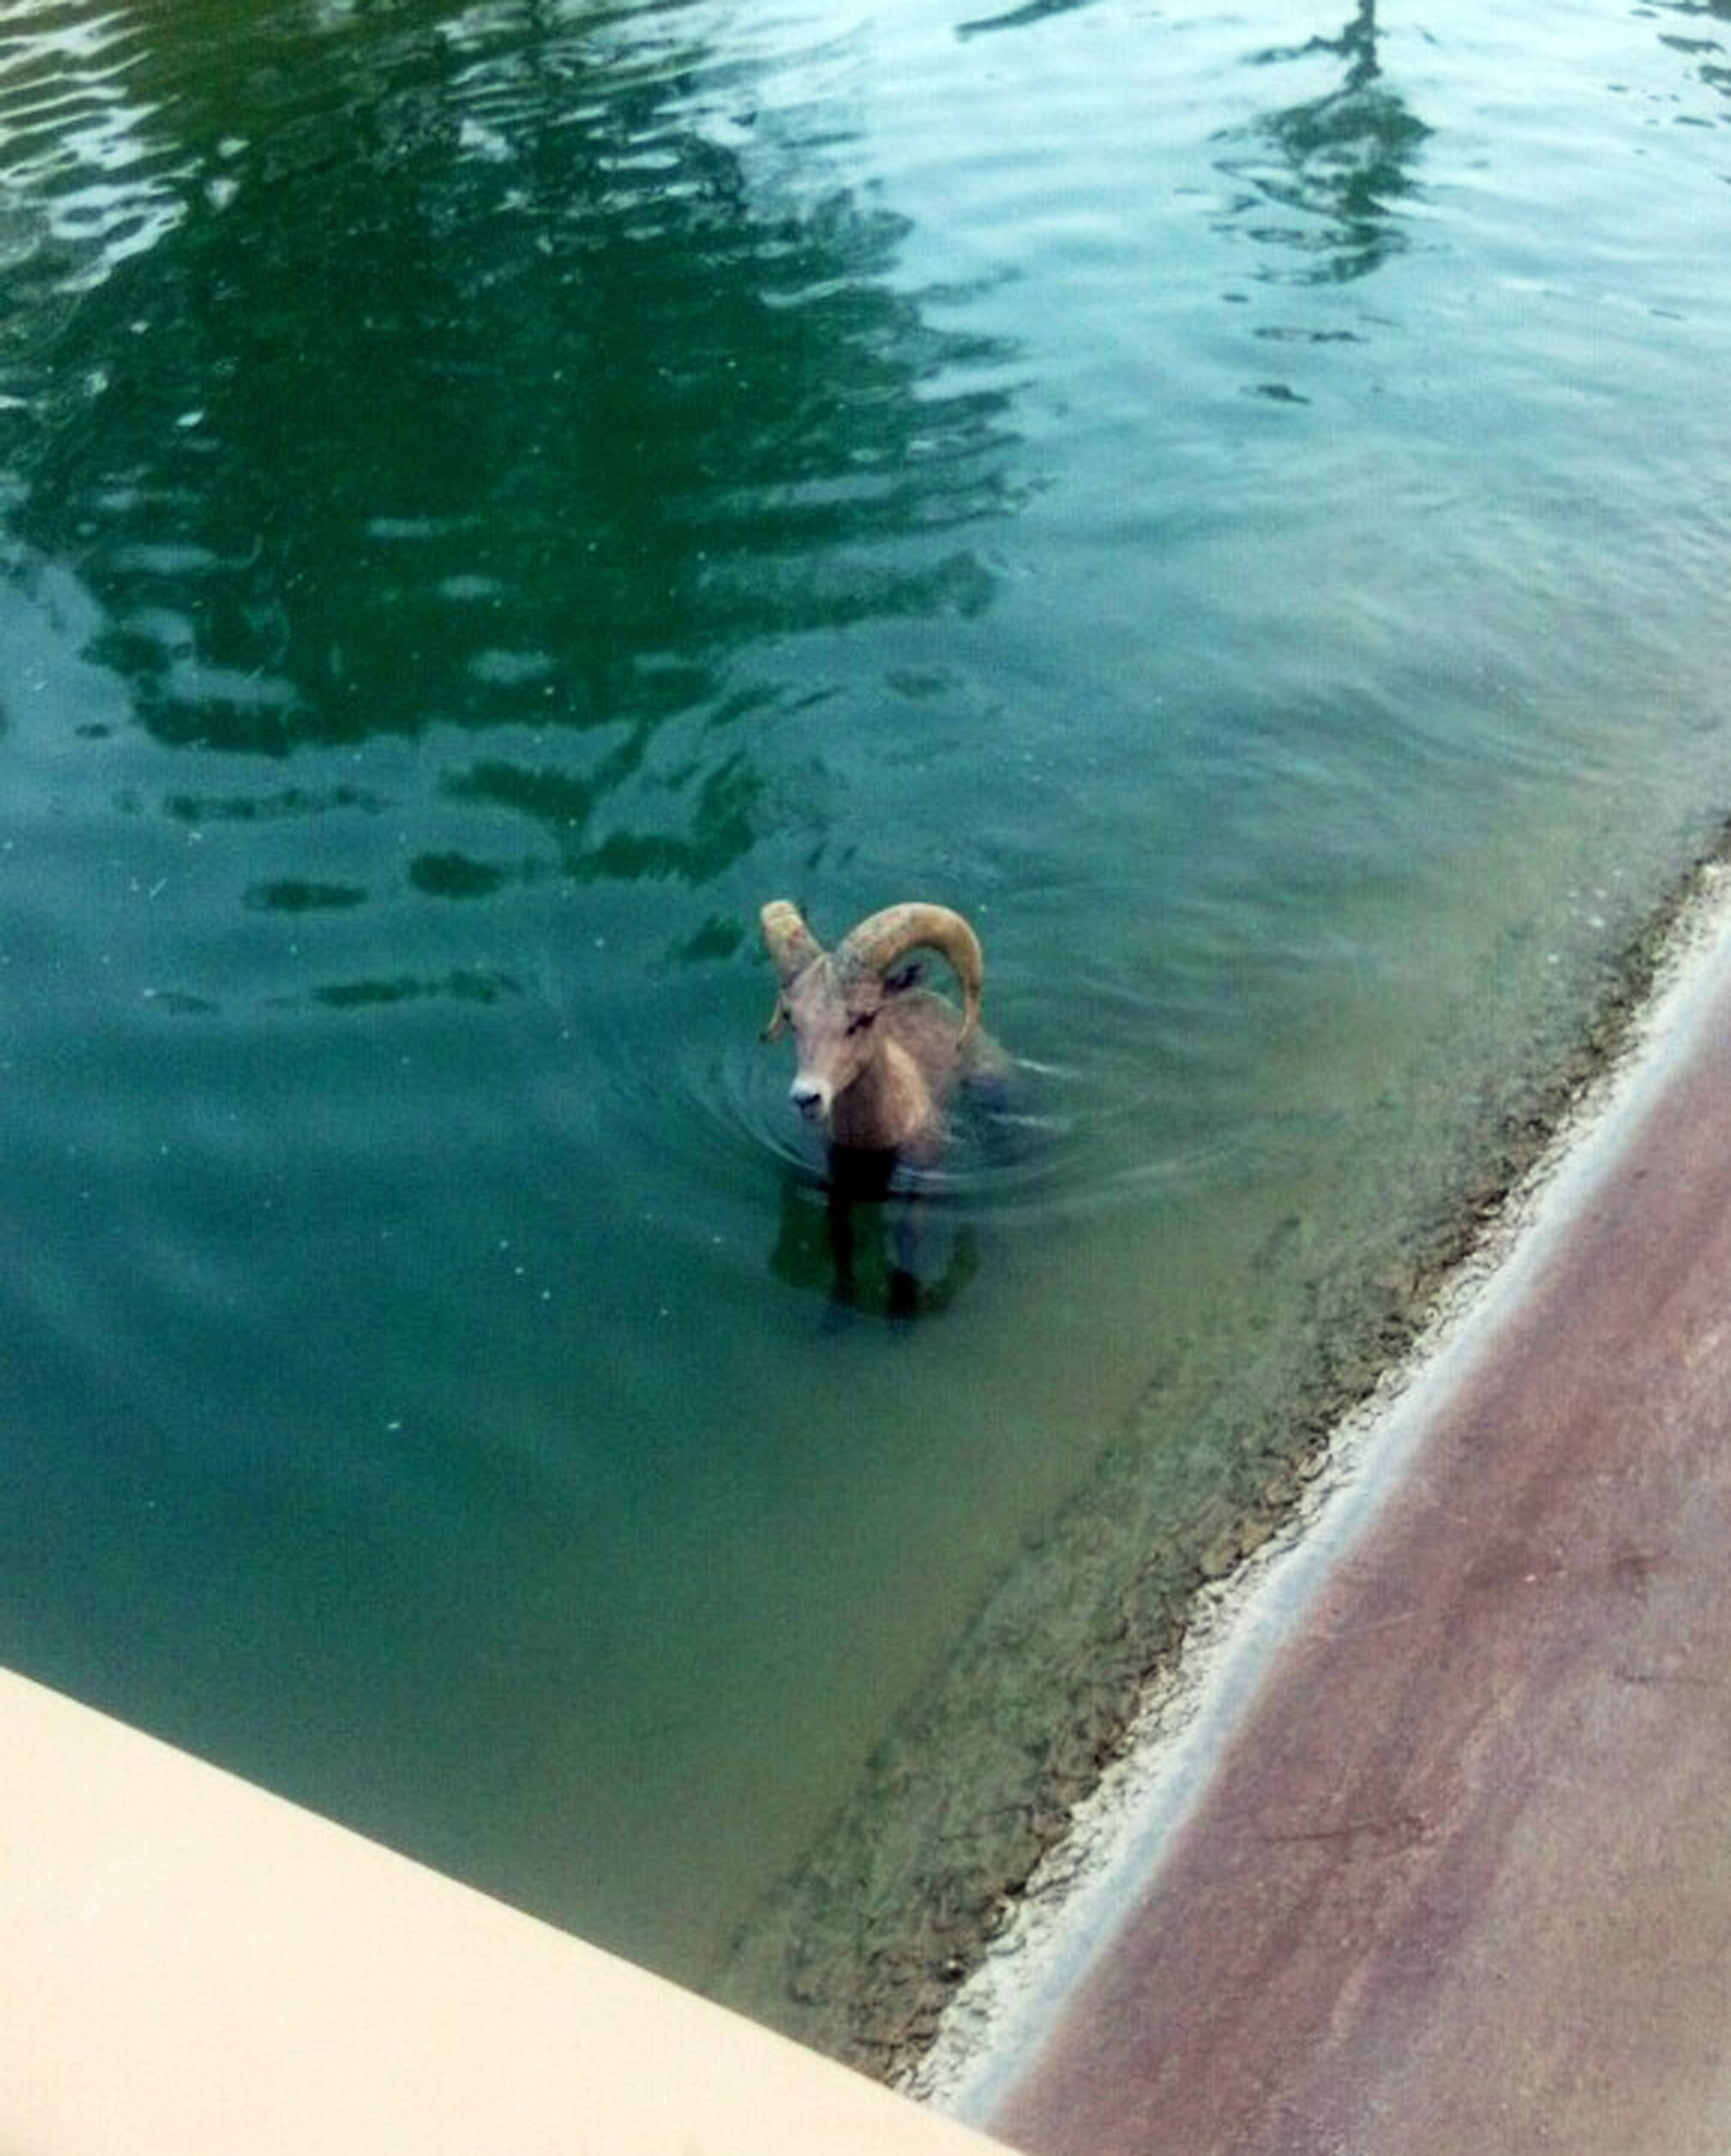 A bighorn sheep is stuck in a canal near the Arnold Palmer course at the PGA West Country Club in La Qunita, Calif.